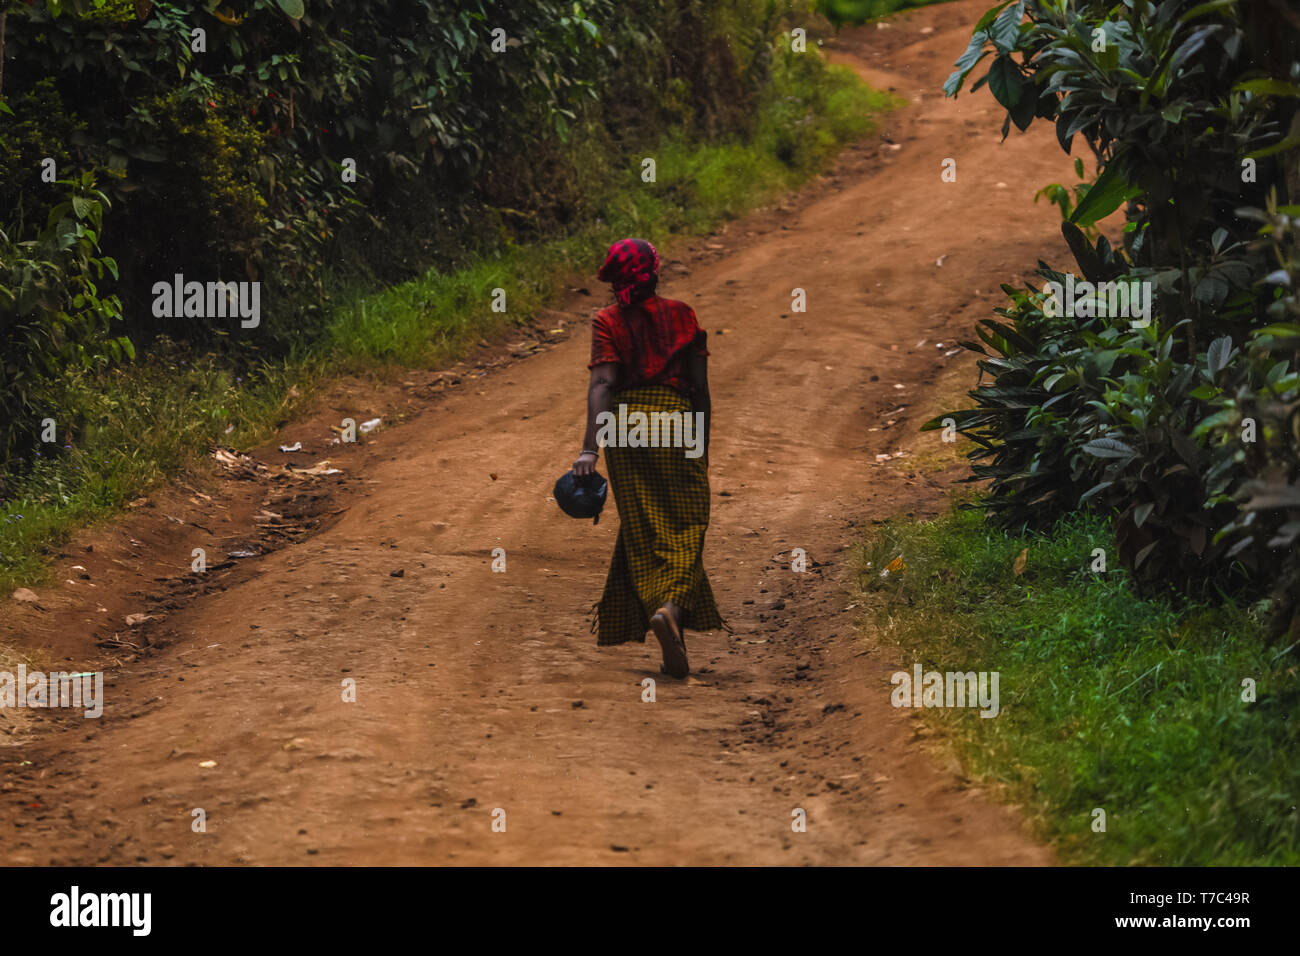 Woman walking on the road by herself, holding in her hand a purse. Wearing red scarf on her head, yellow long skirt. Wild nature out of town, green - Stock Image